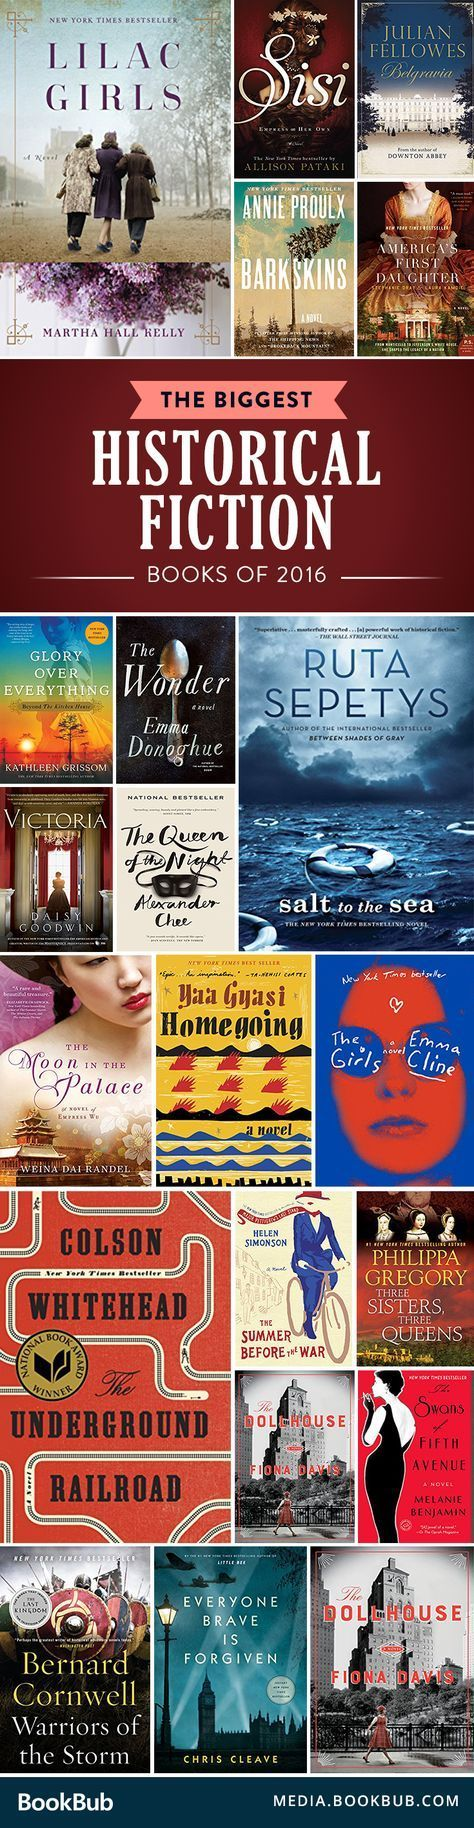 The Biggest Historical Fiction Books Of 2016